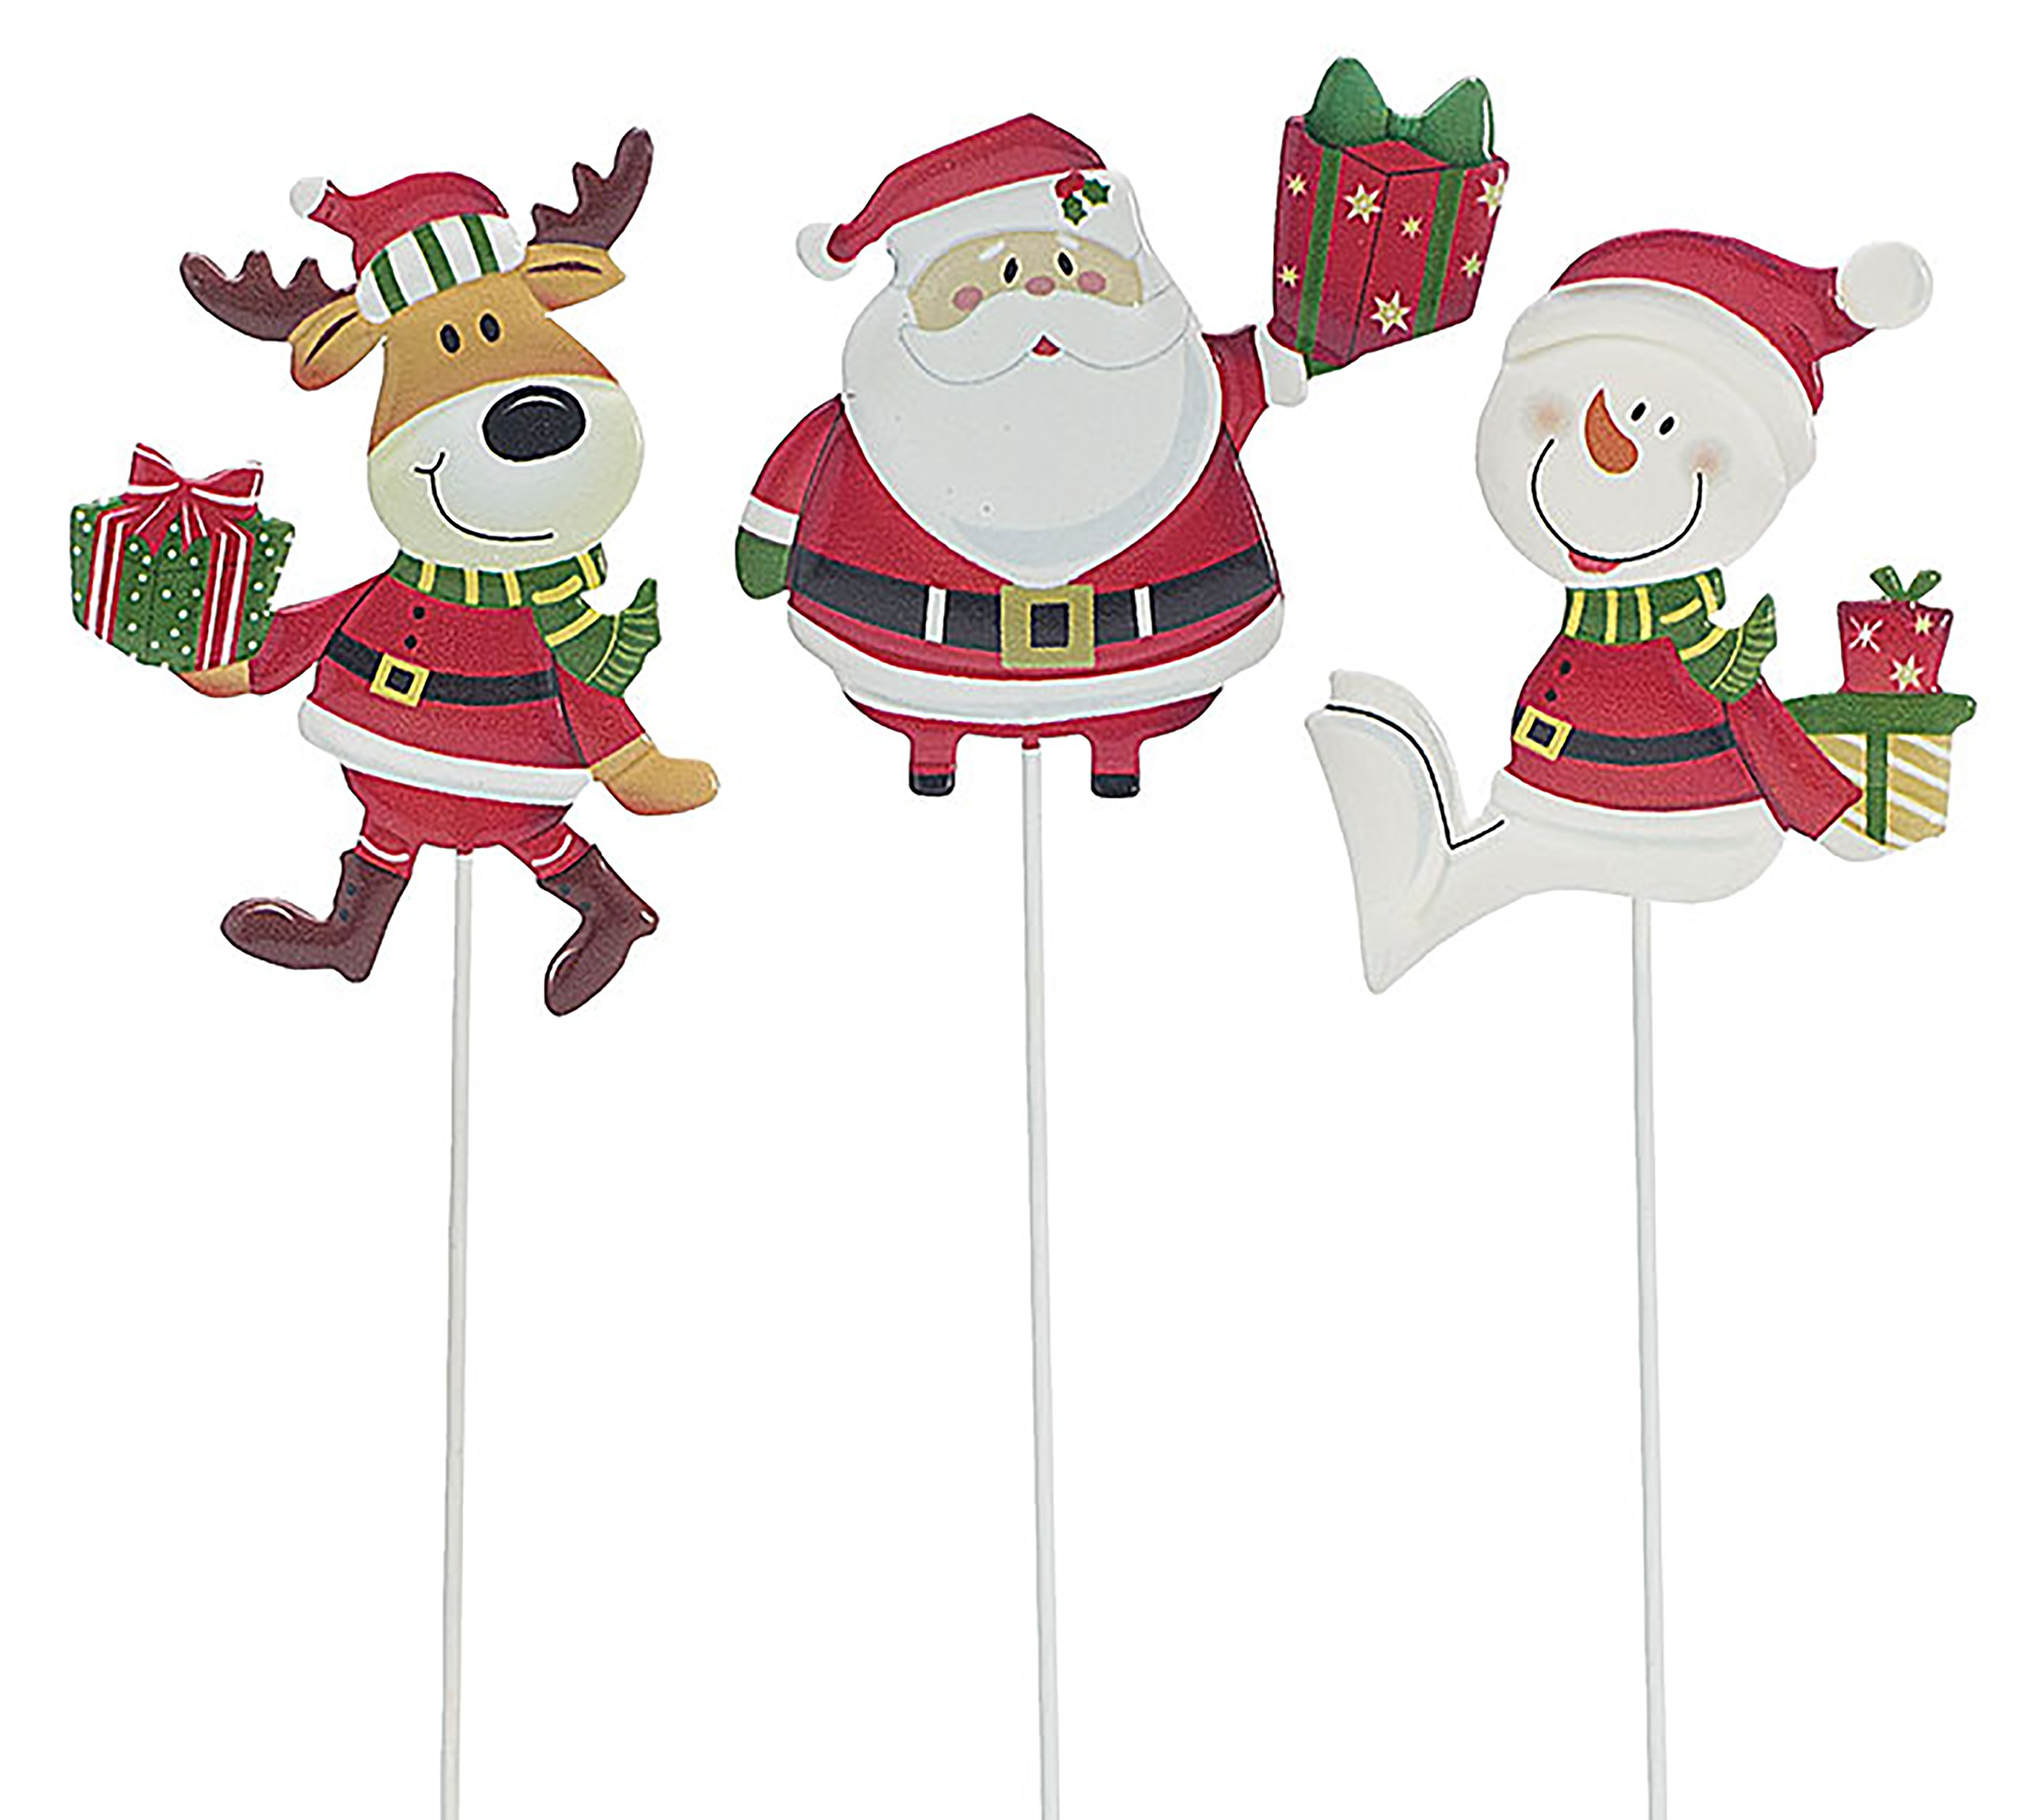 Hand-Painted, Embossed tin Santa, Snowman, and Reindeer Christmas Pick Assortment.